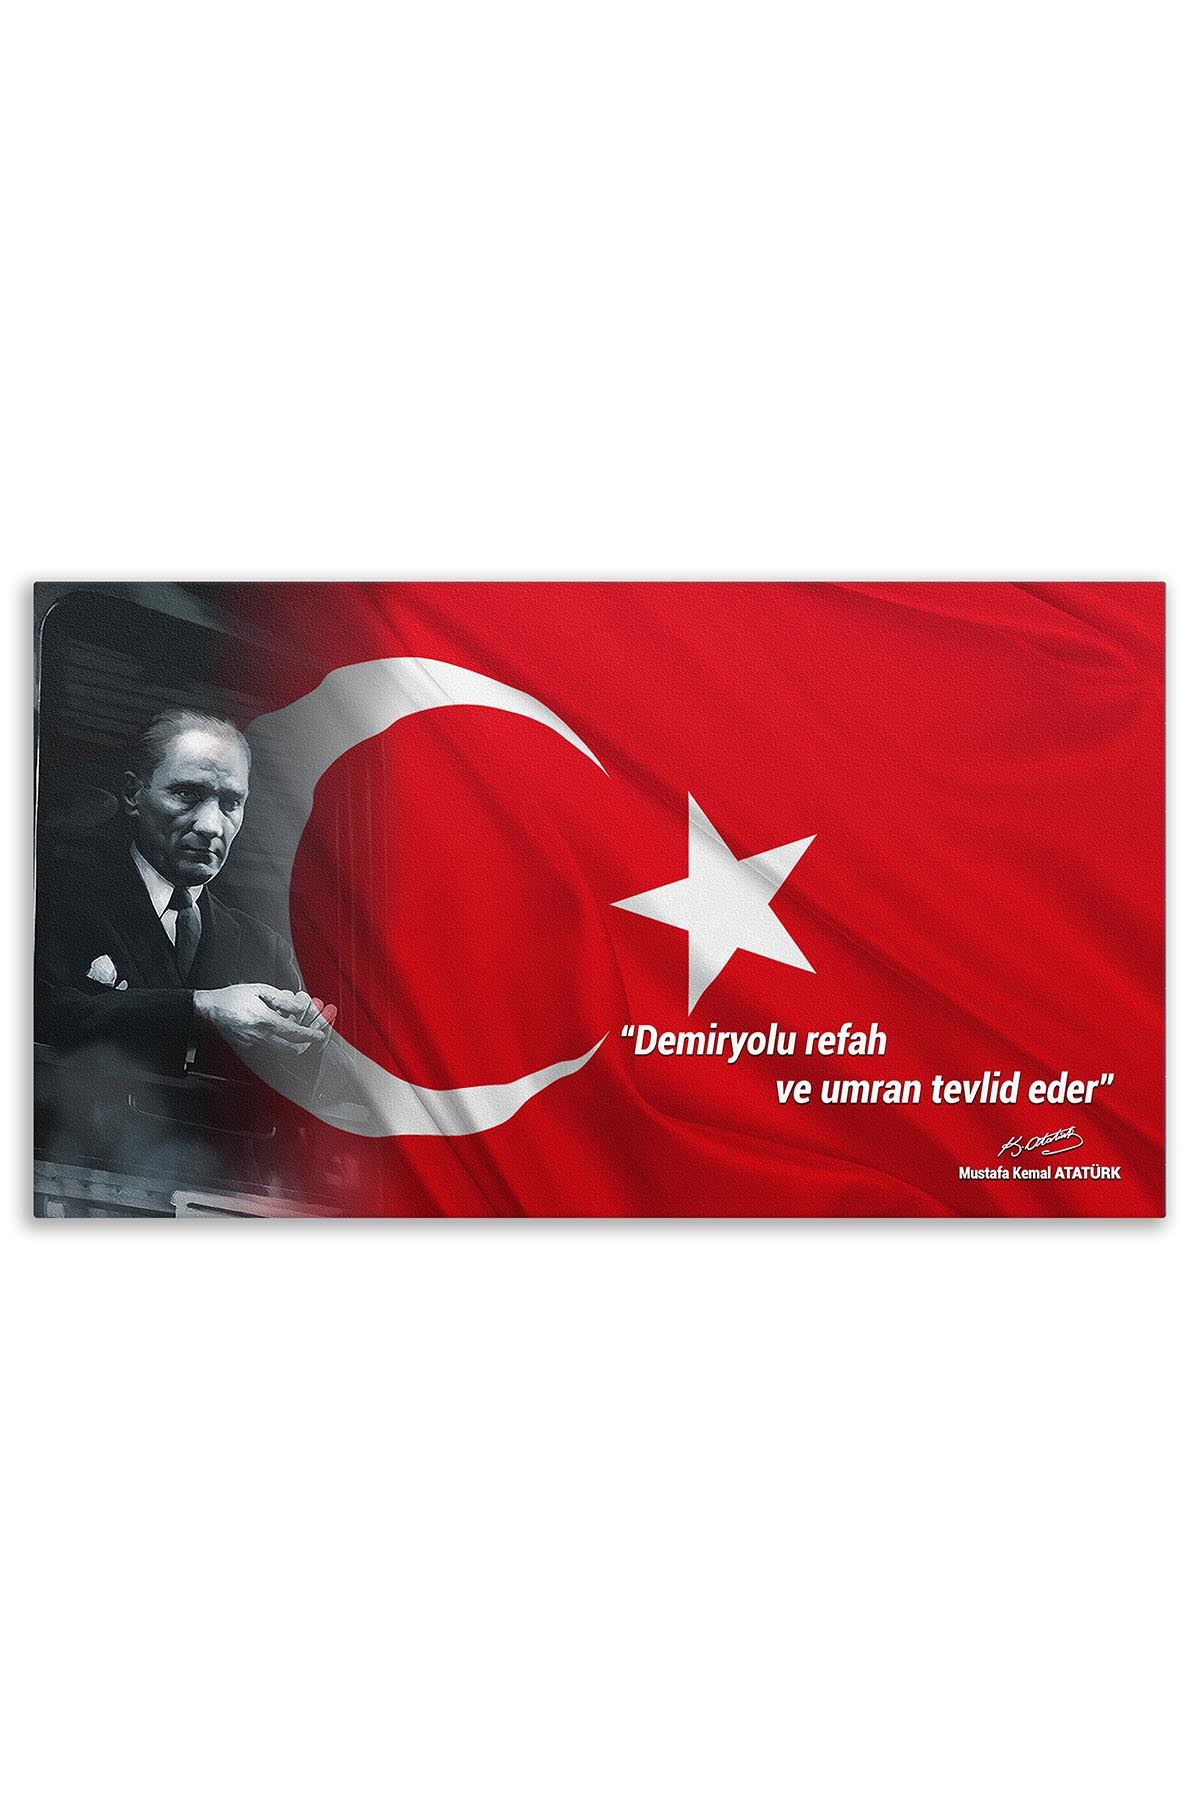 Atatürk With Turkish Flag Canvas Board | Printed Canvas Board | Customized Canvas Board |Digital Printing